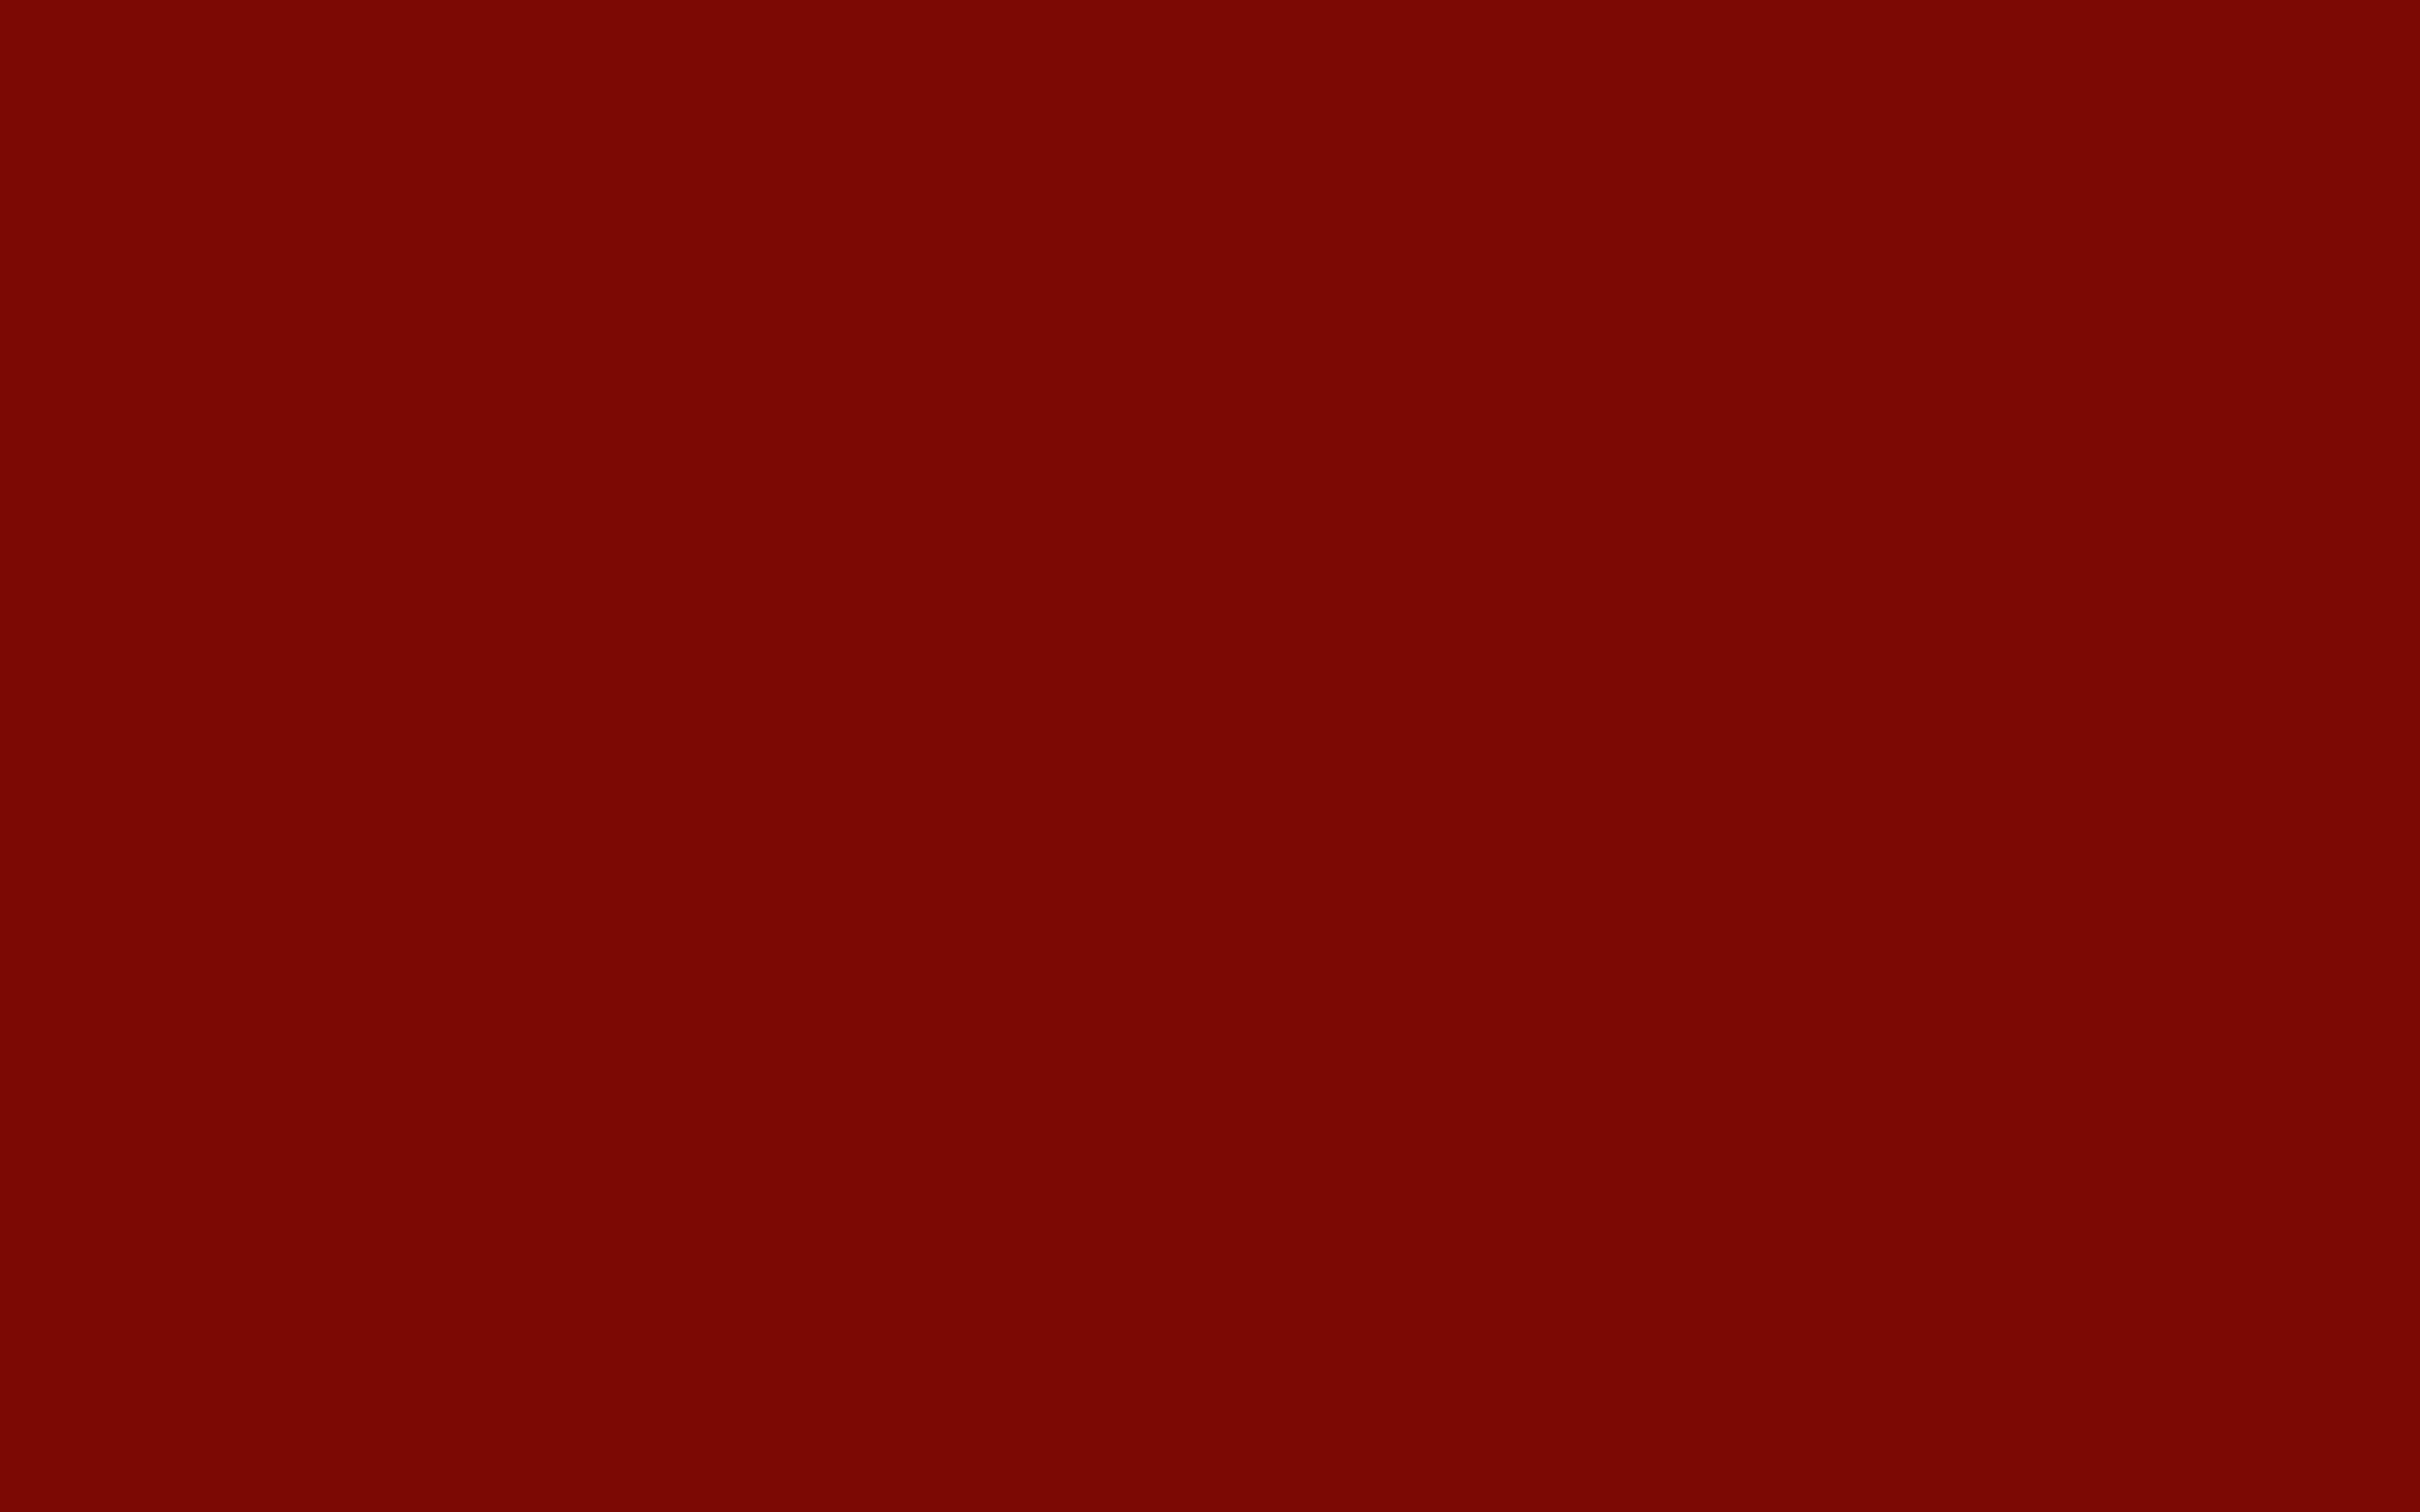 2560x1600 Barn Red Solid Color Background